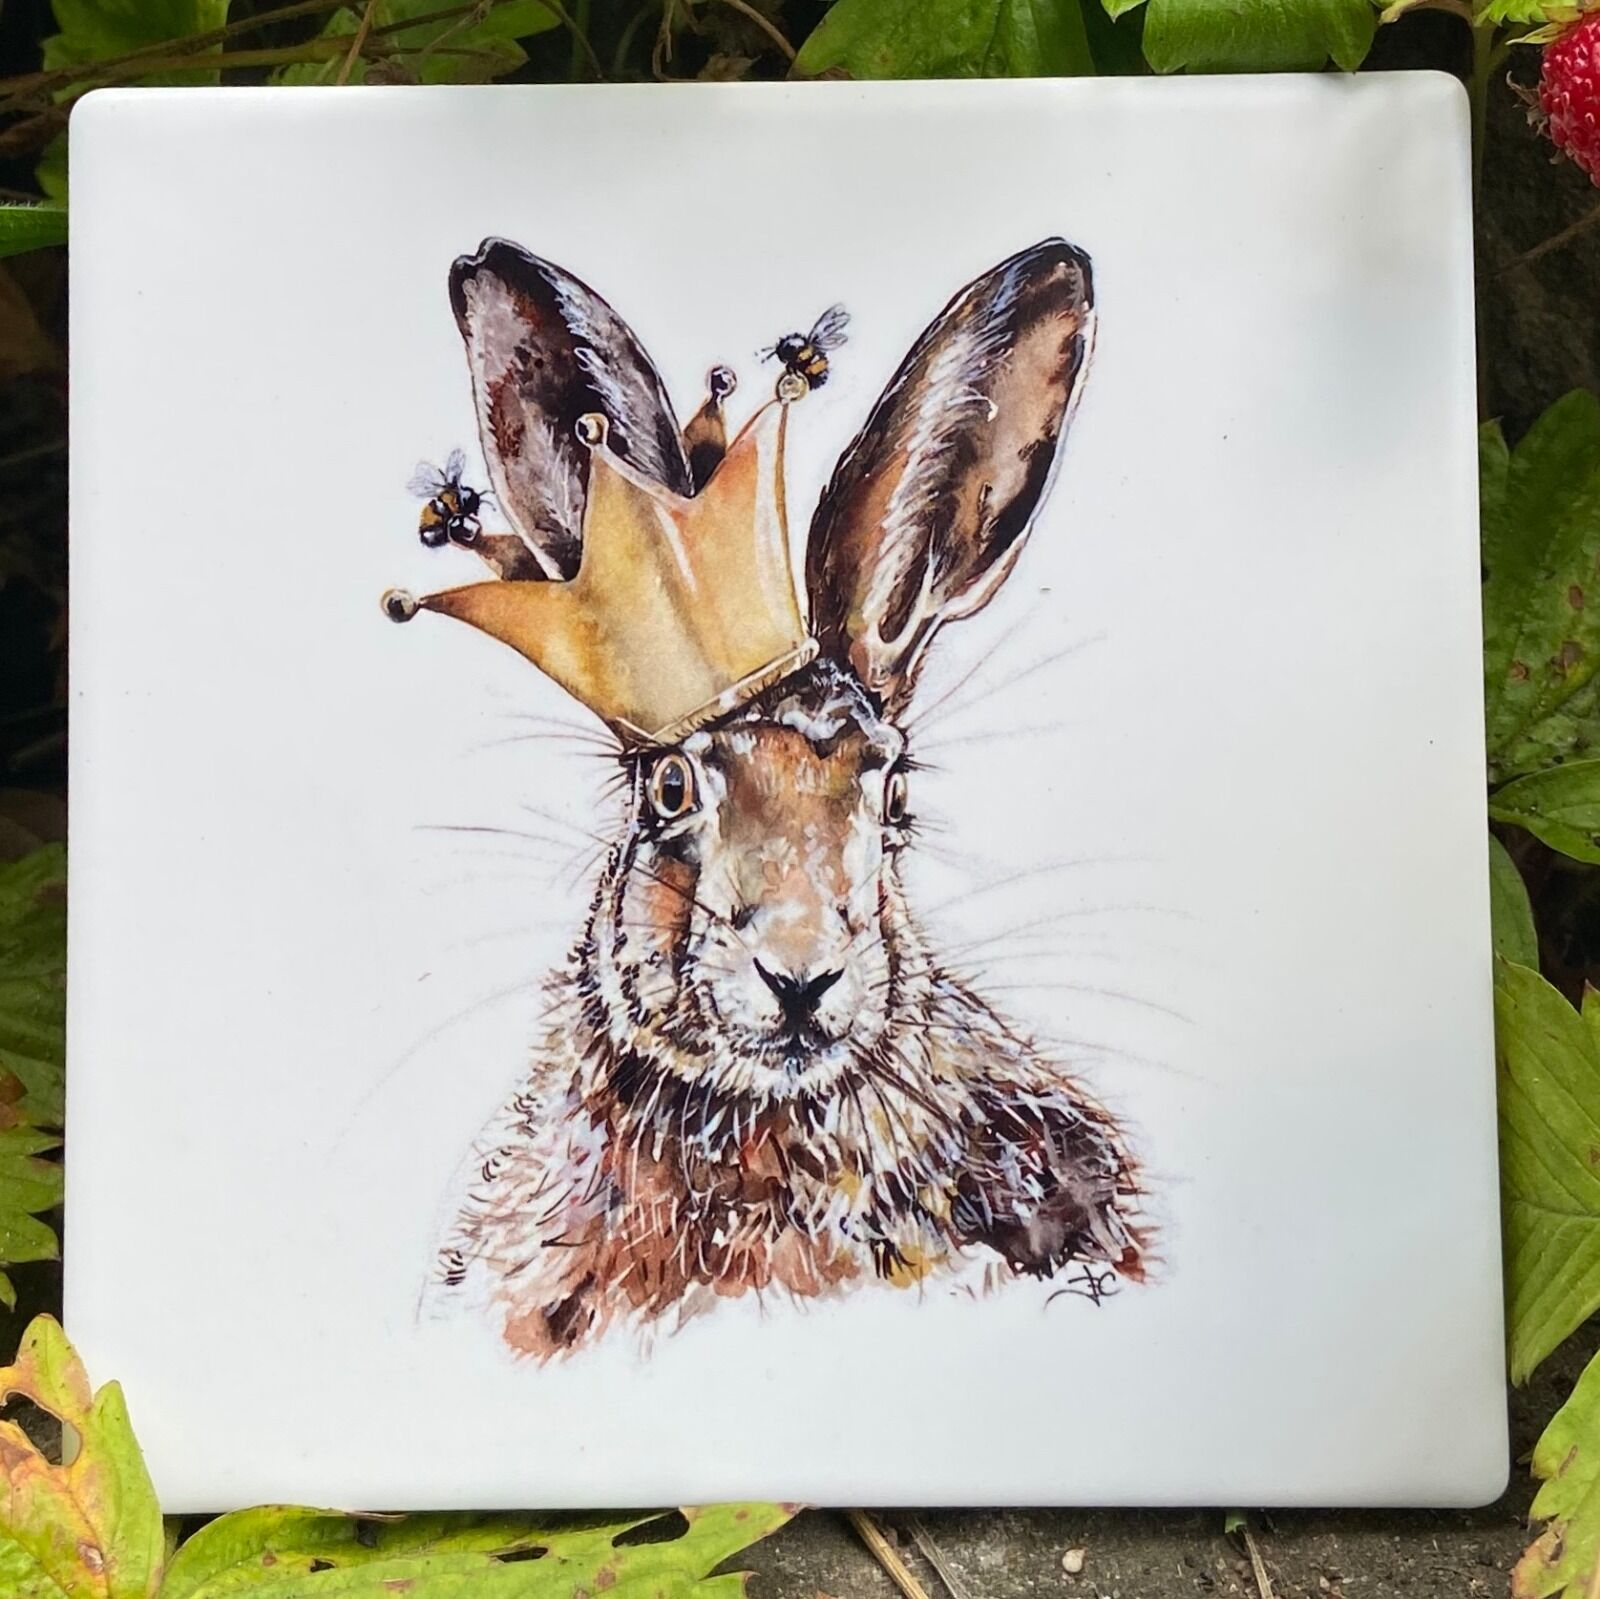 King for a Day Ceramic Coaster